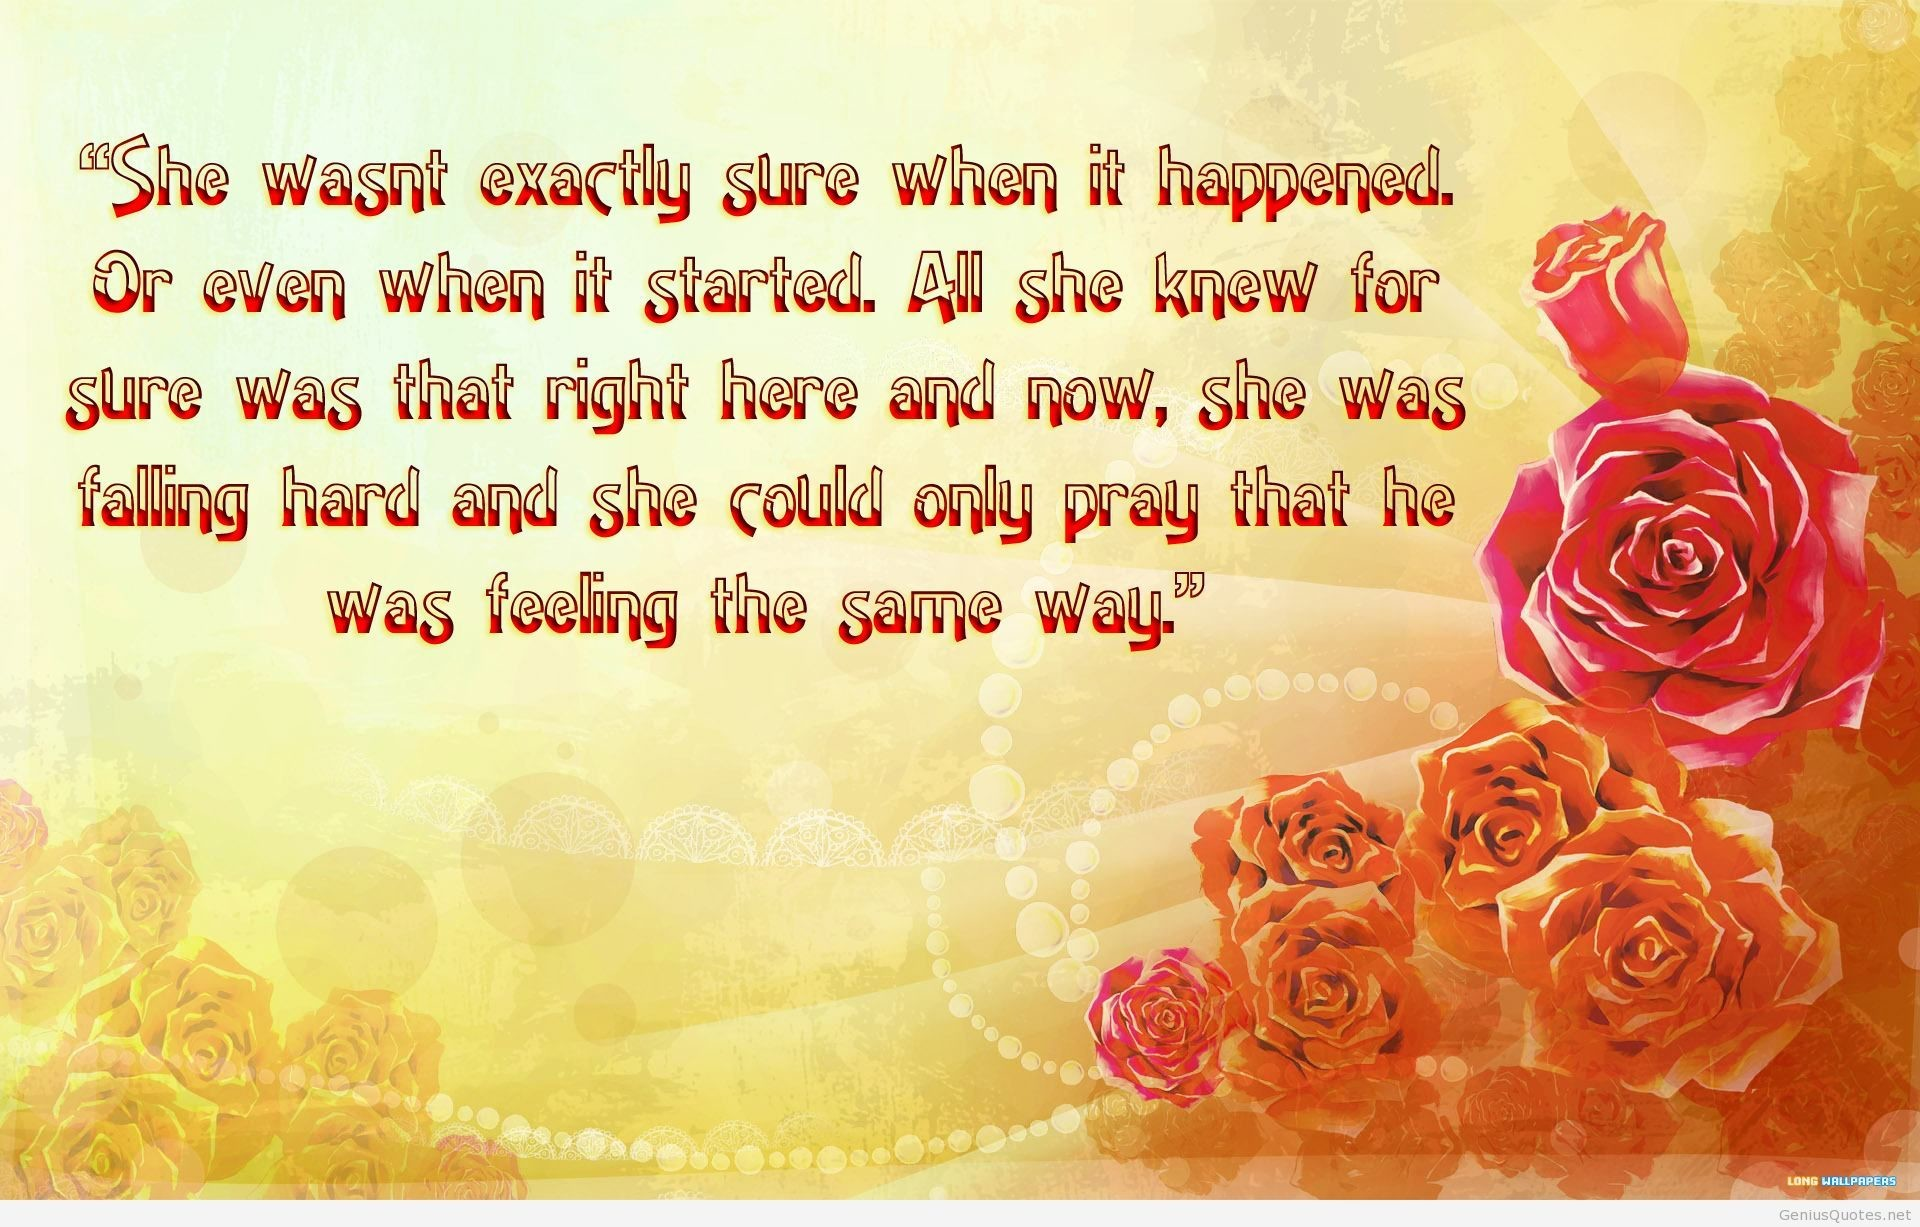 Cute Love Quote Wallpaper Picture For Desktop Wallpaper 1920 x 1227 px  707.88 KB for mobile